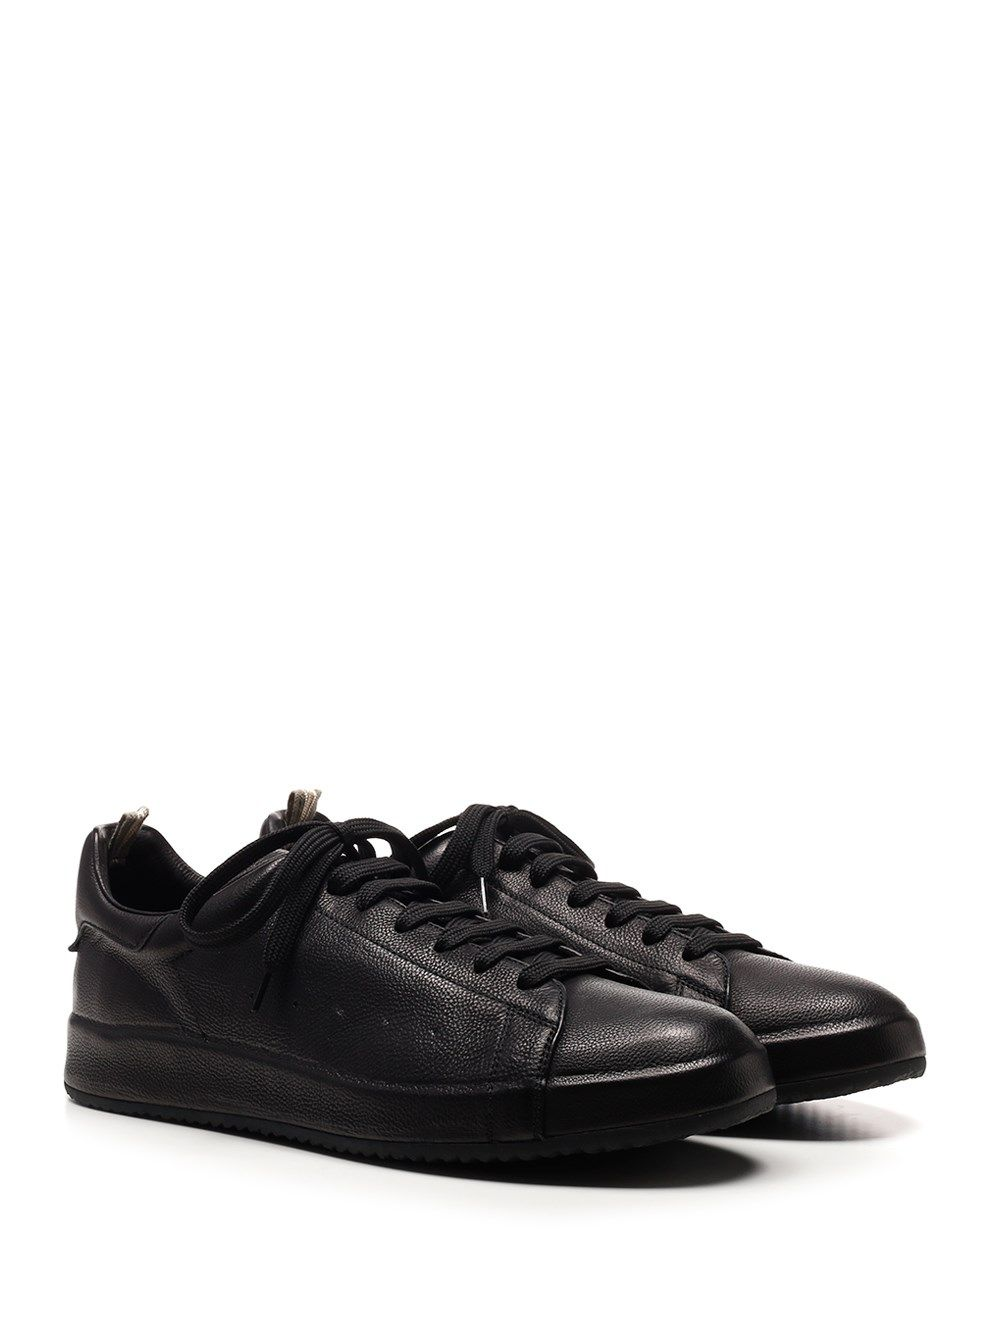 OFFICINE CREATIVE Leathers OFFICINE CREATIVE MEN'S BLACK OTHER MATERIALS SNEAKERS